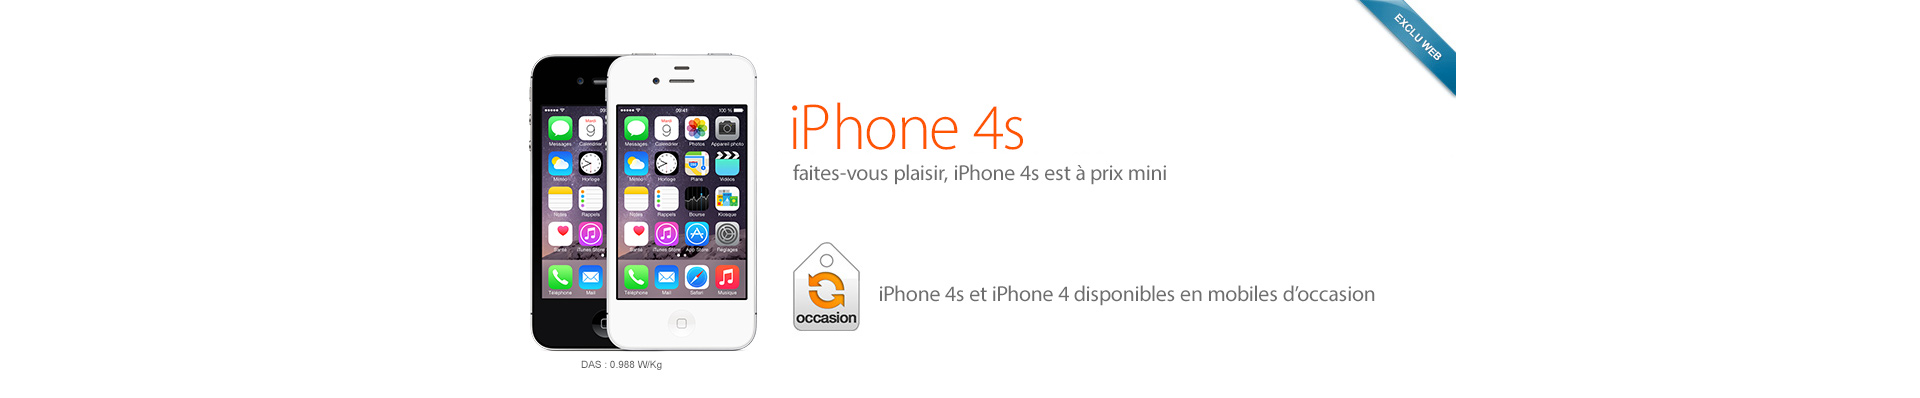 iPhone 4S occasion